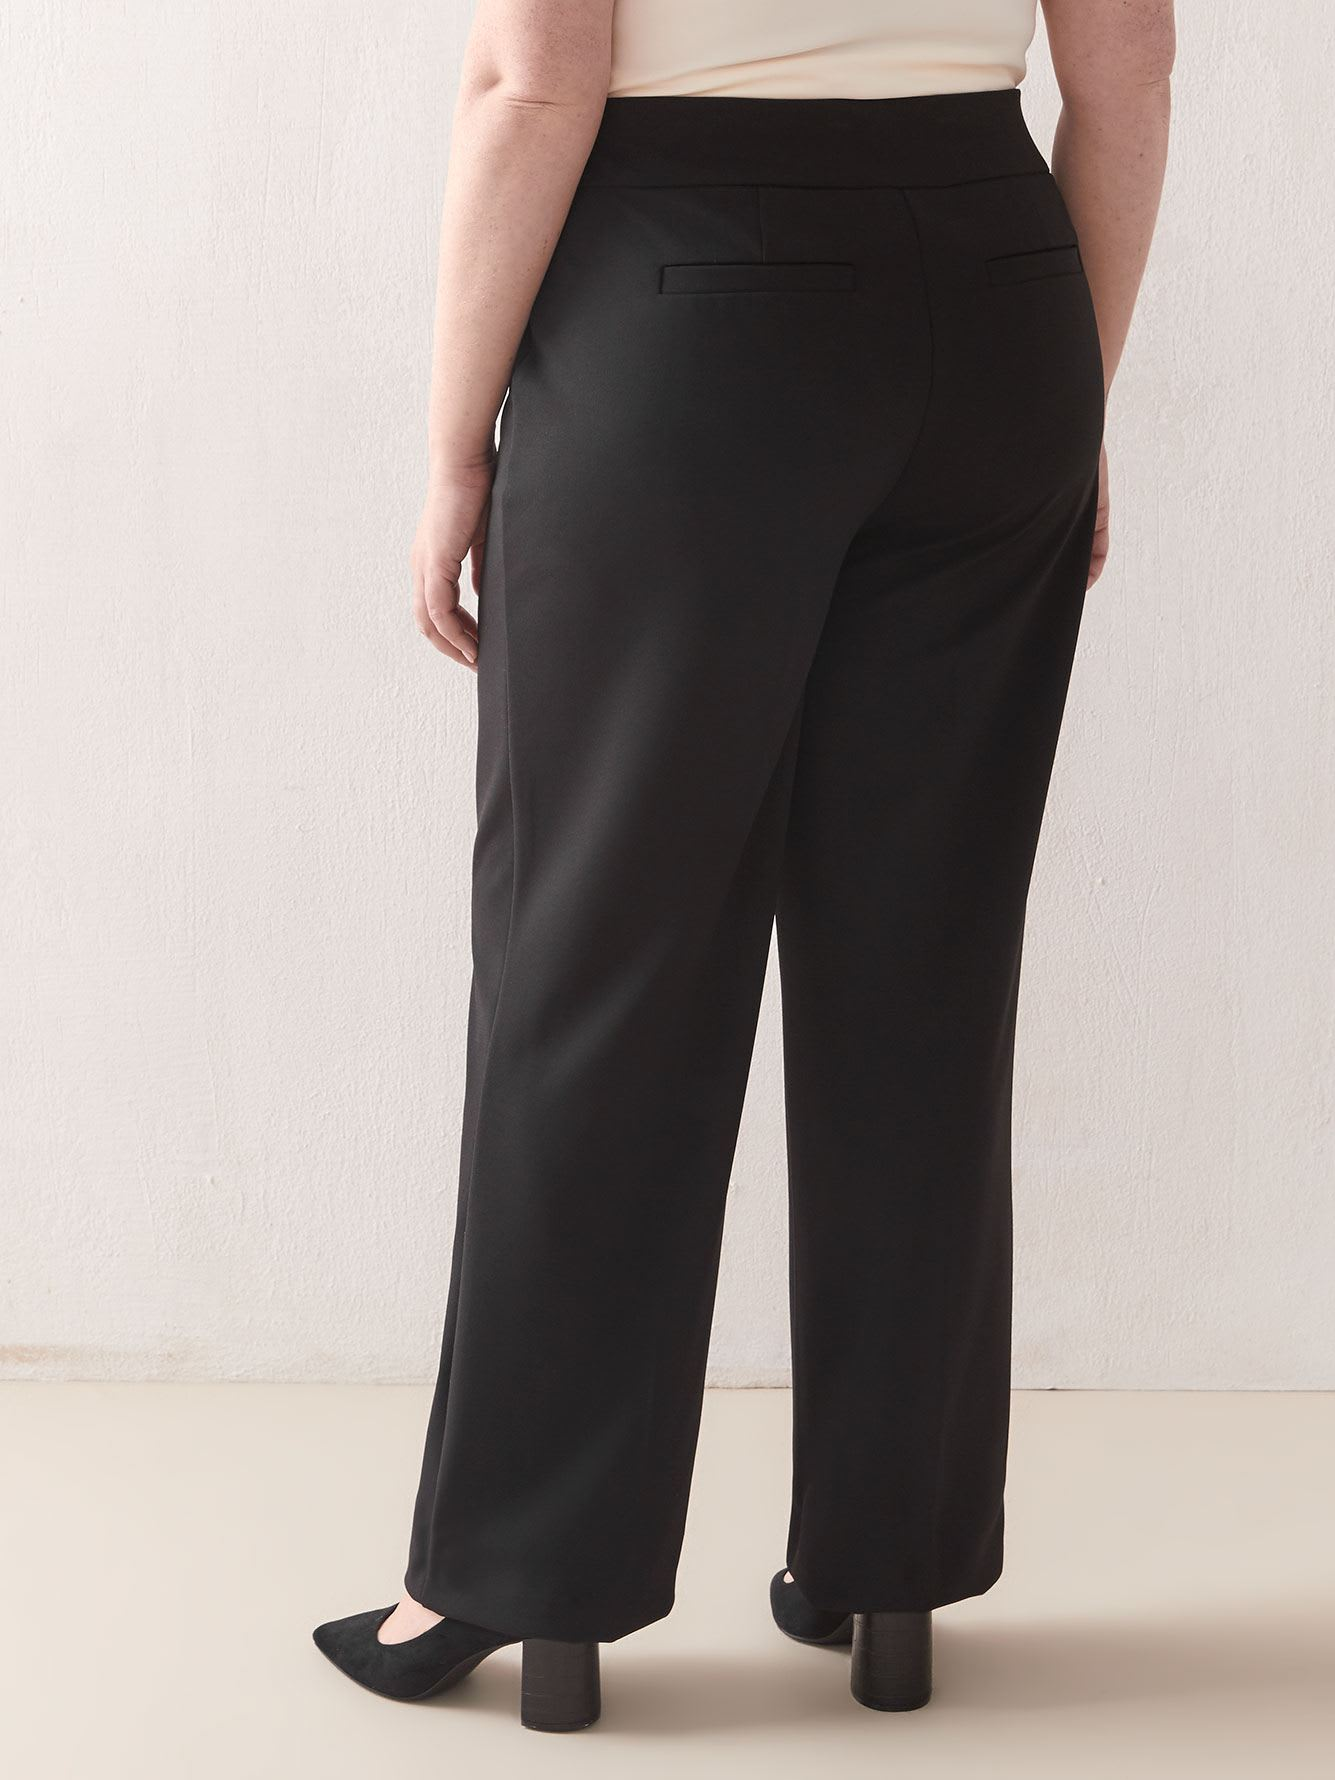 Wide Leg Pull-On Pant - In Every Story